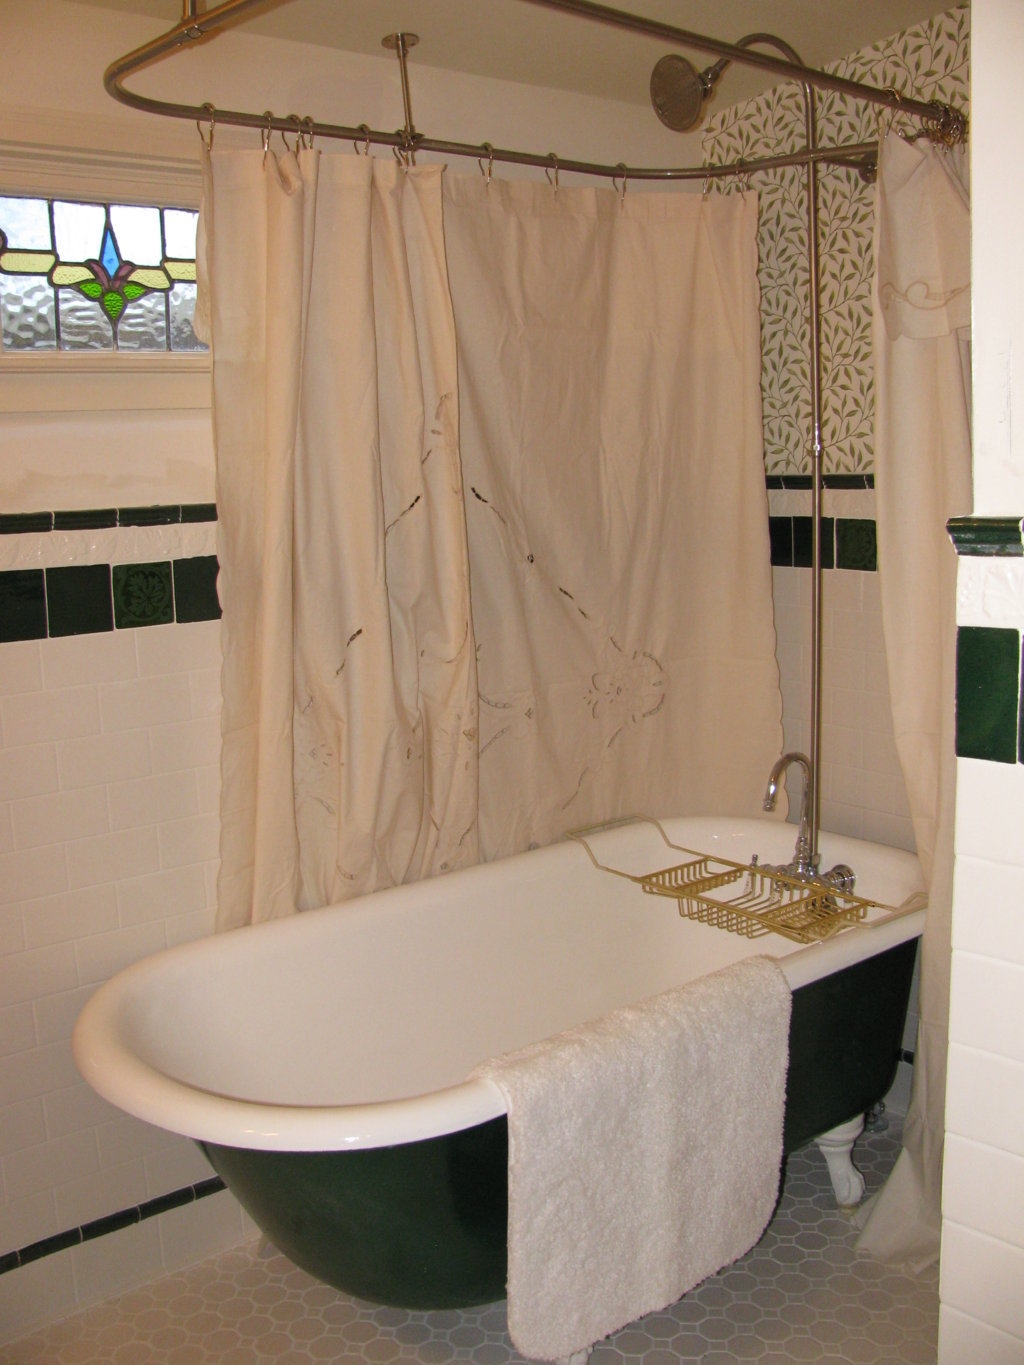 Clawfoot Tub Shower Curtain | Diy Clawfoot Tub Shower Curtain Rod | Shower Curtain Rod for Clawfoot Bathtub